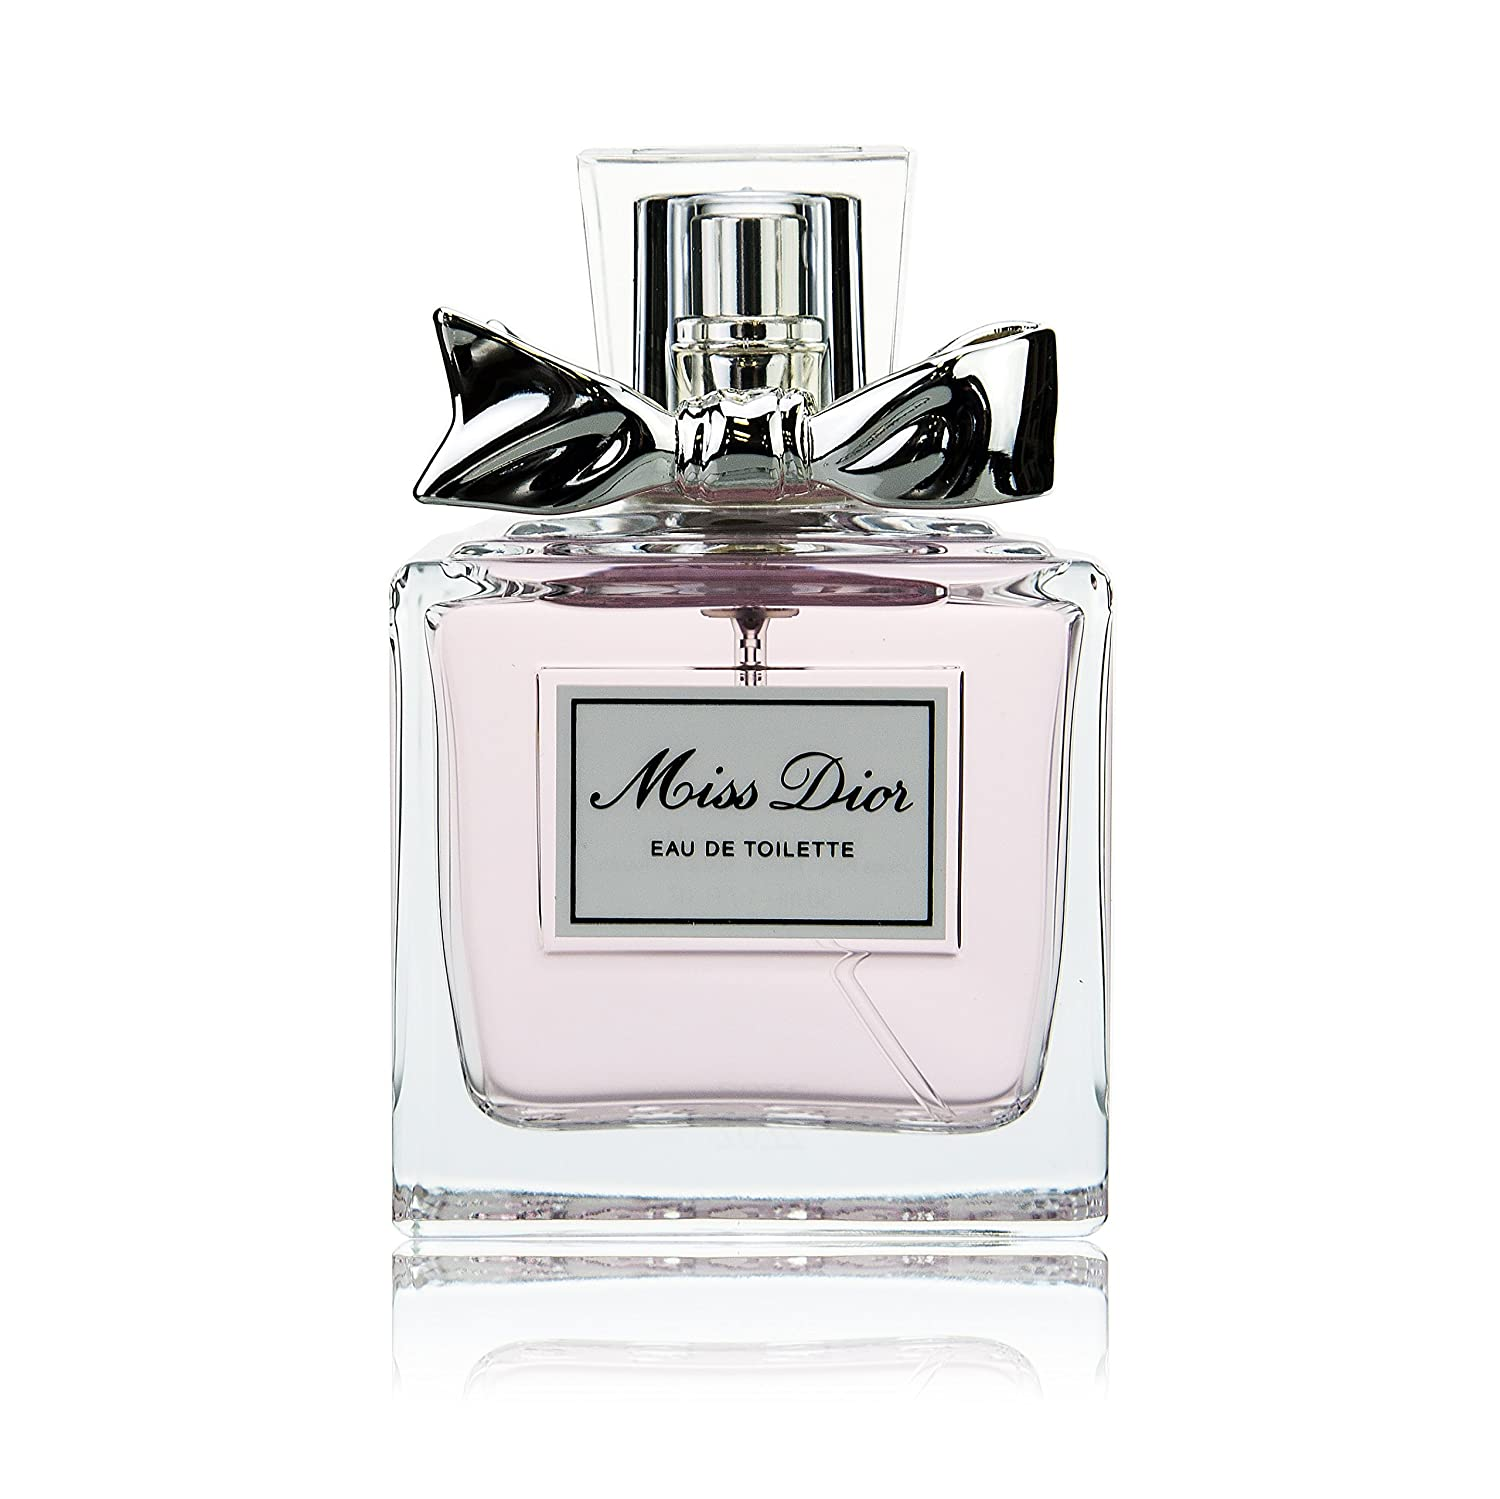 b2a39aff7174 Amazon.com   Christian Dior Miss Dior Eau De Toilette Spray (New Scent) -  50ml 1.7oz   Miss Dior Indian   Beauty